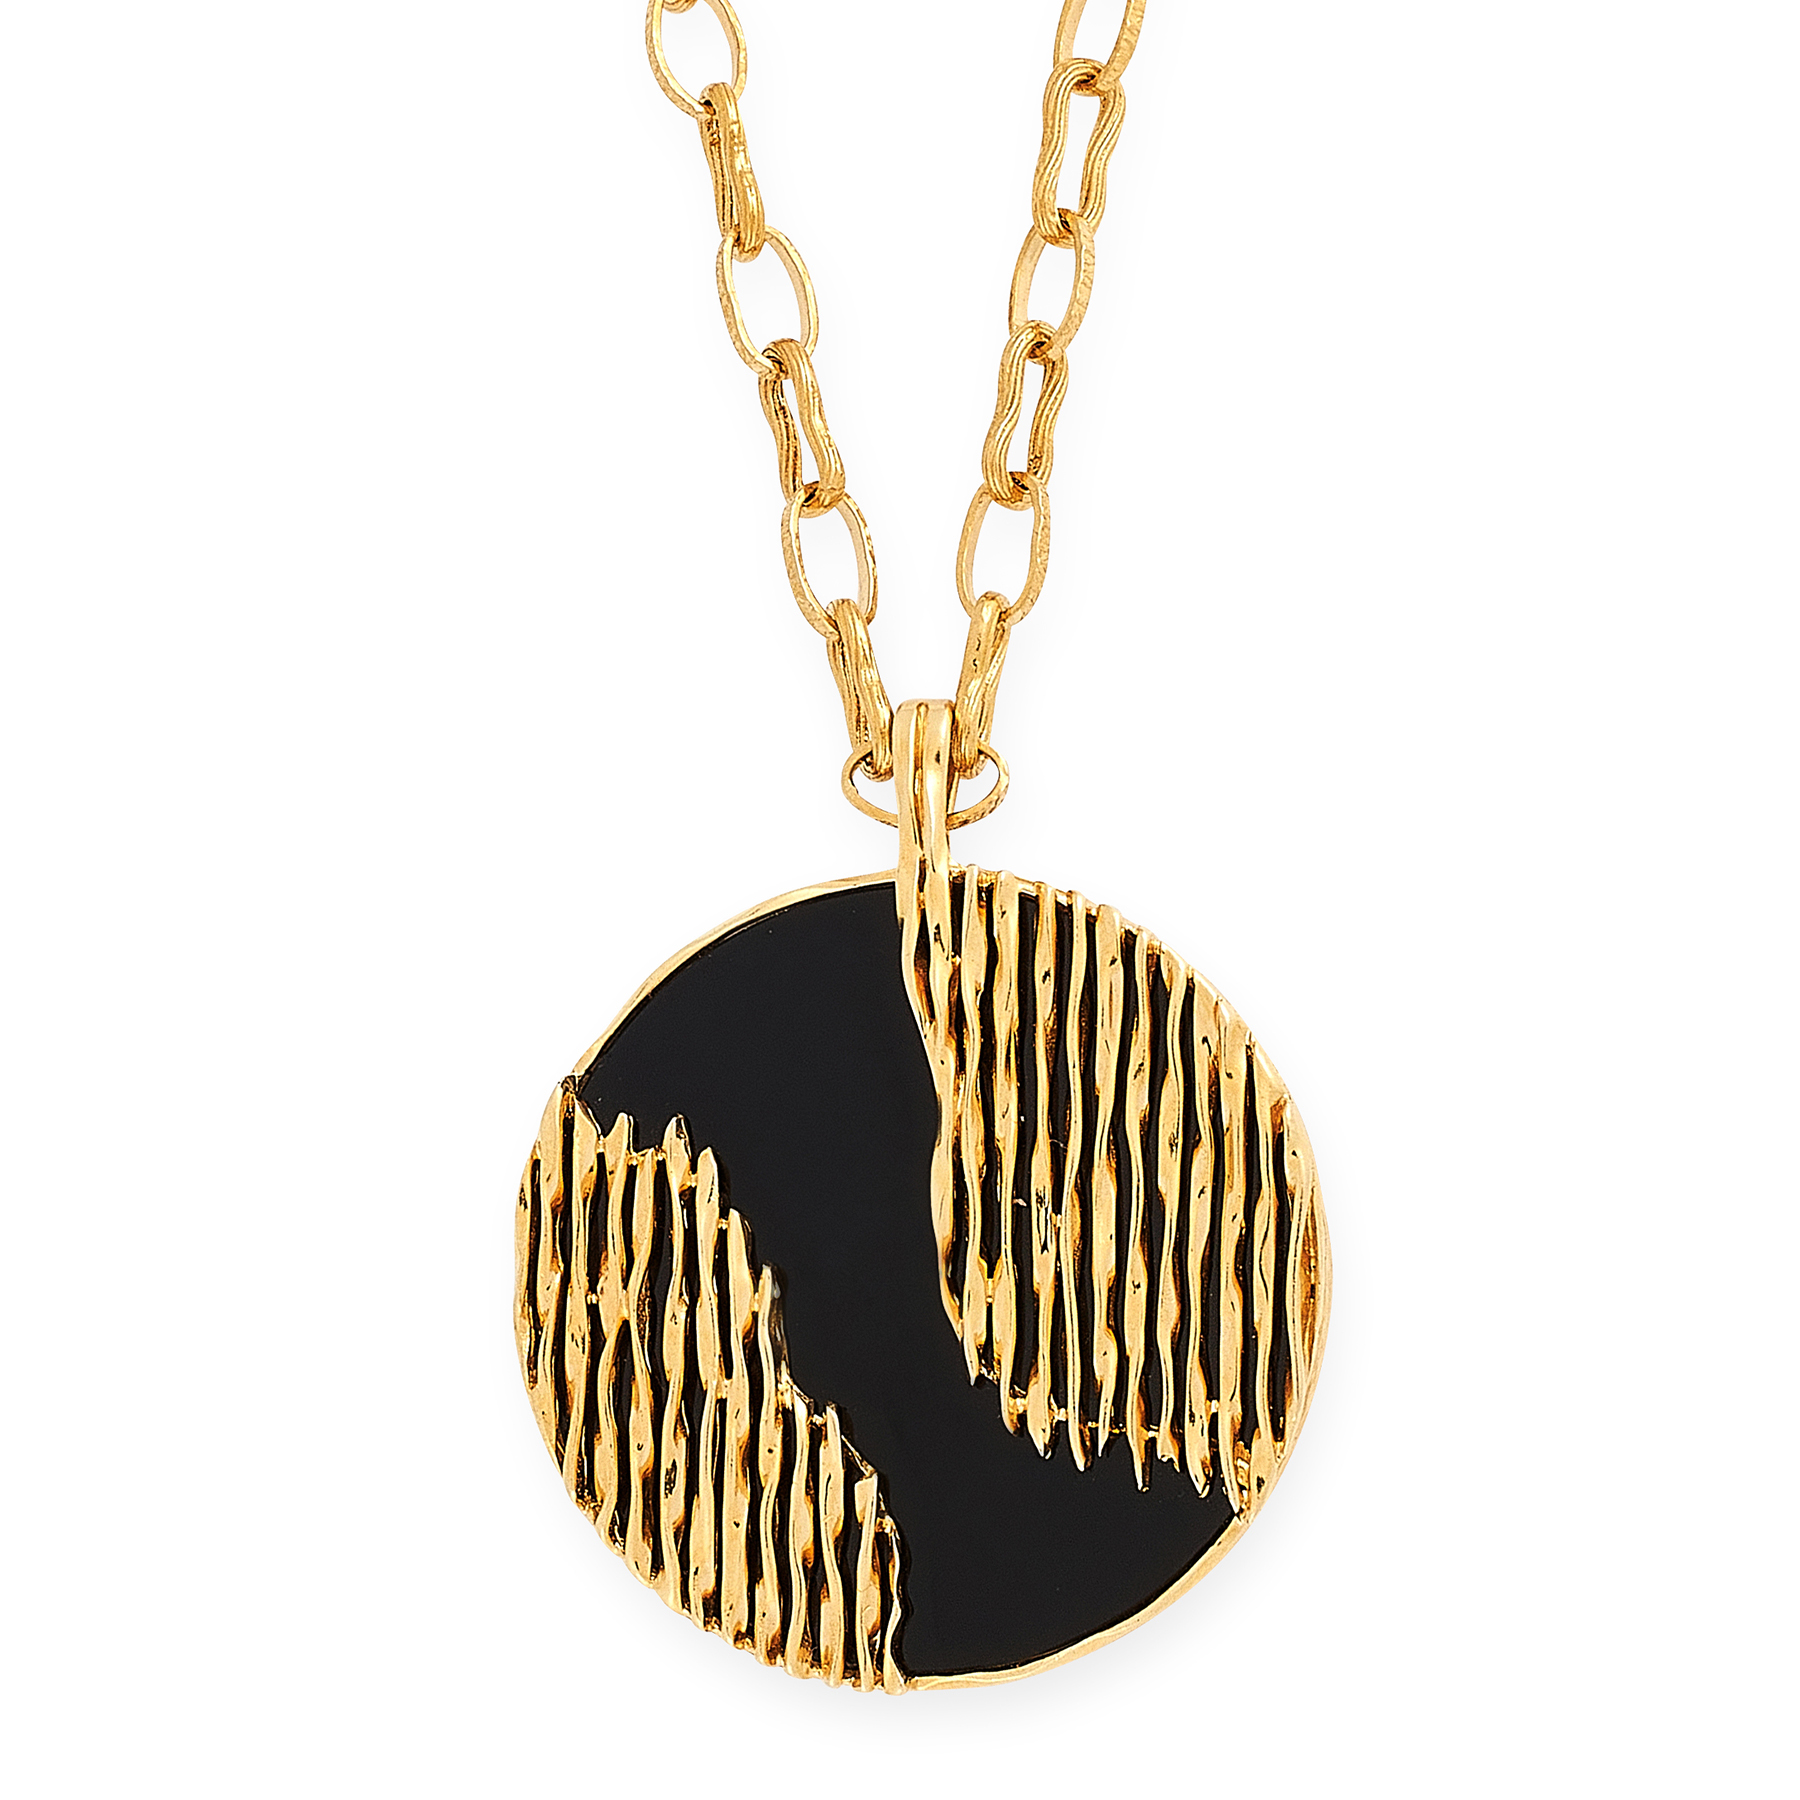 A VINTAGE ONYX PENDANT AND CHAIN, KUTCHINSKY 1972 in 18ct yellow gold, the pendant designed as a